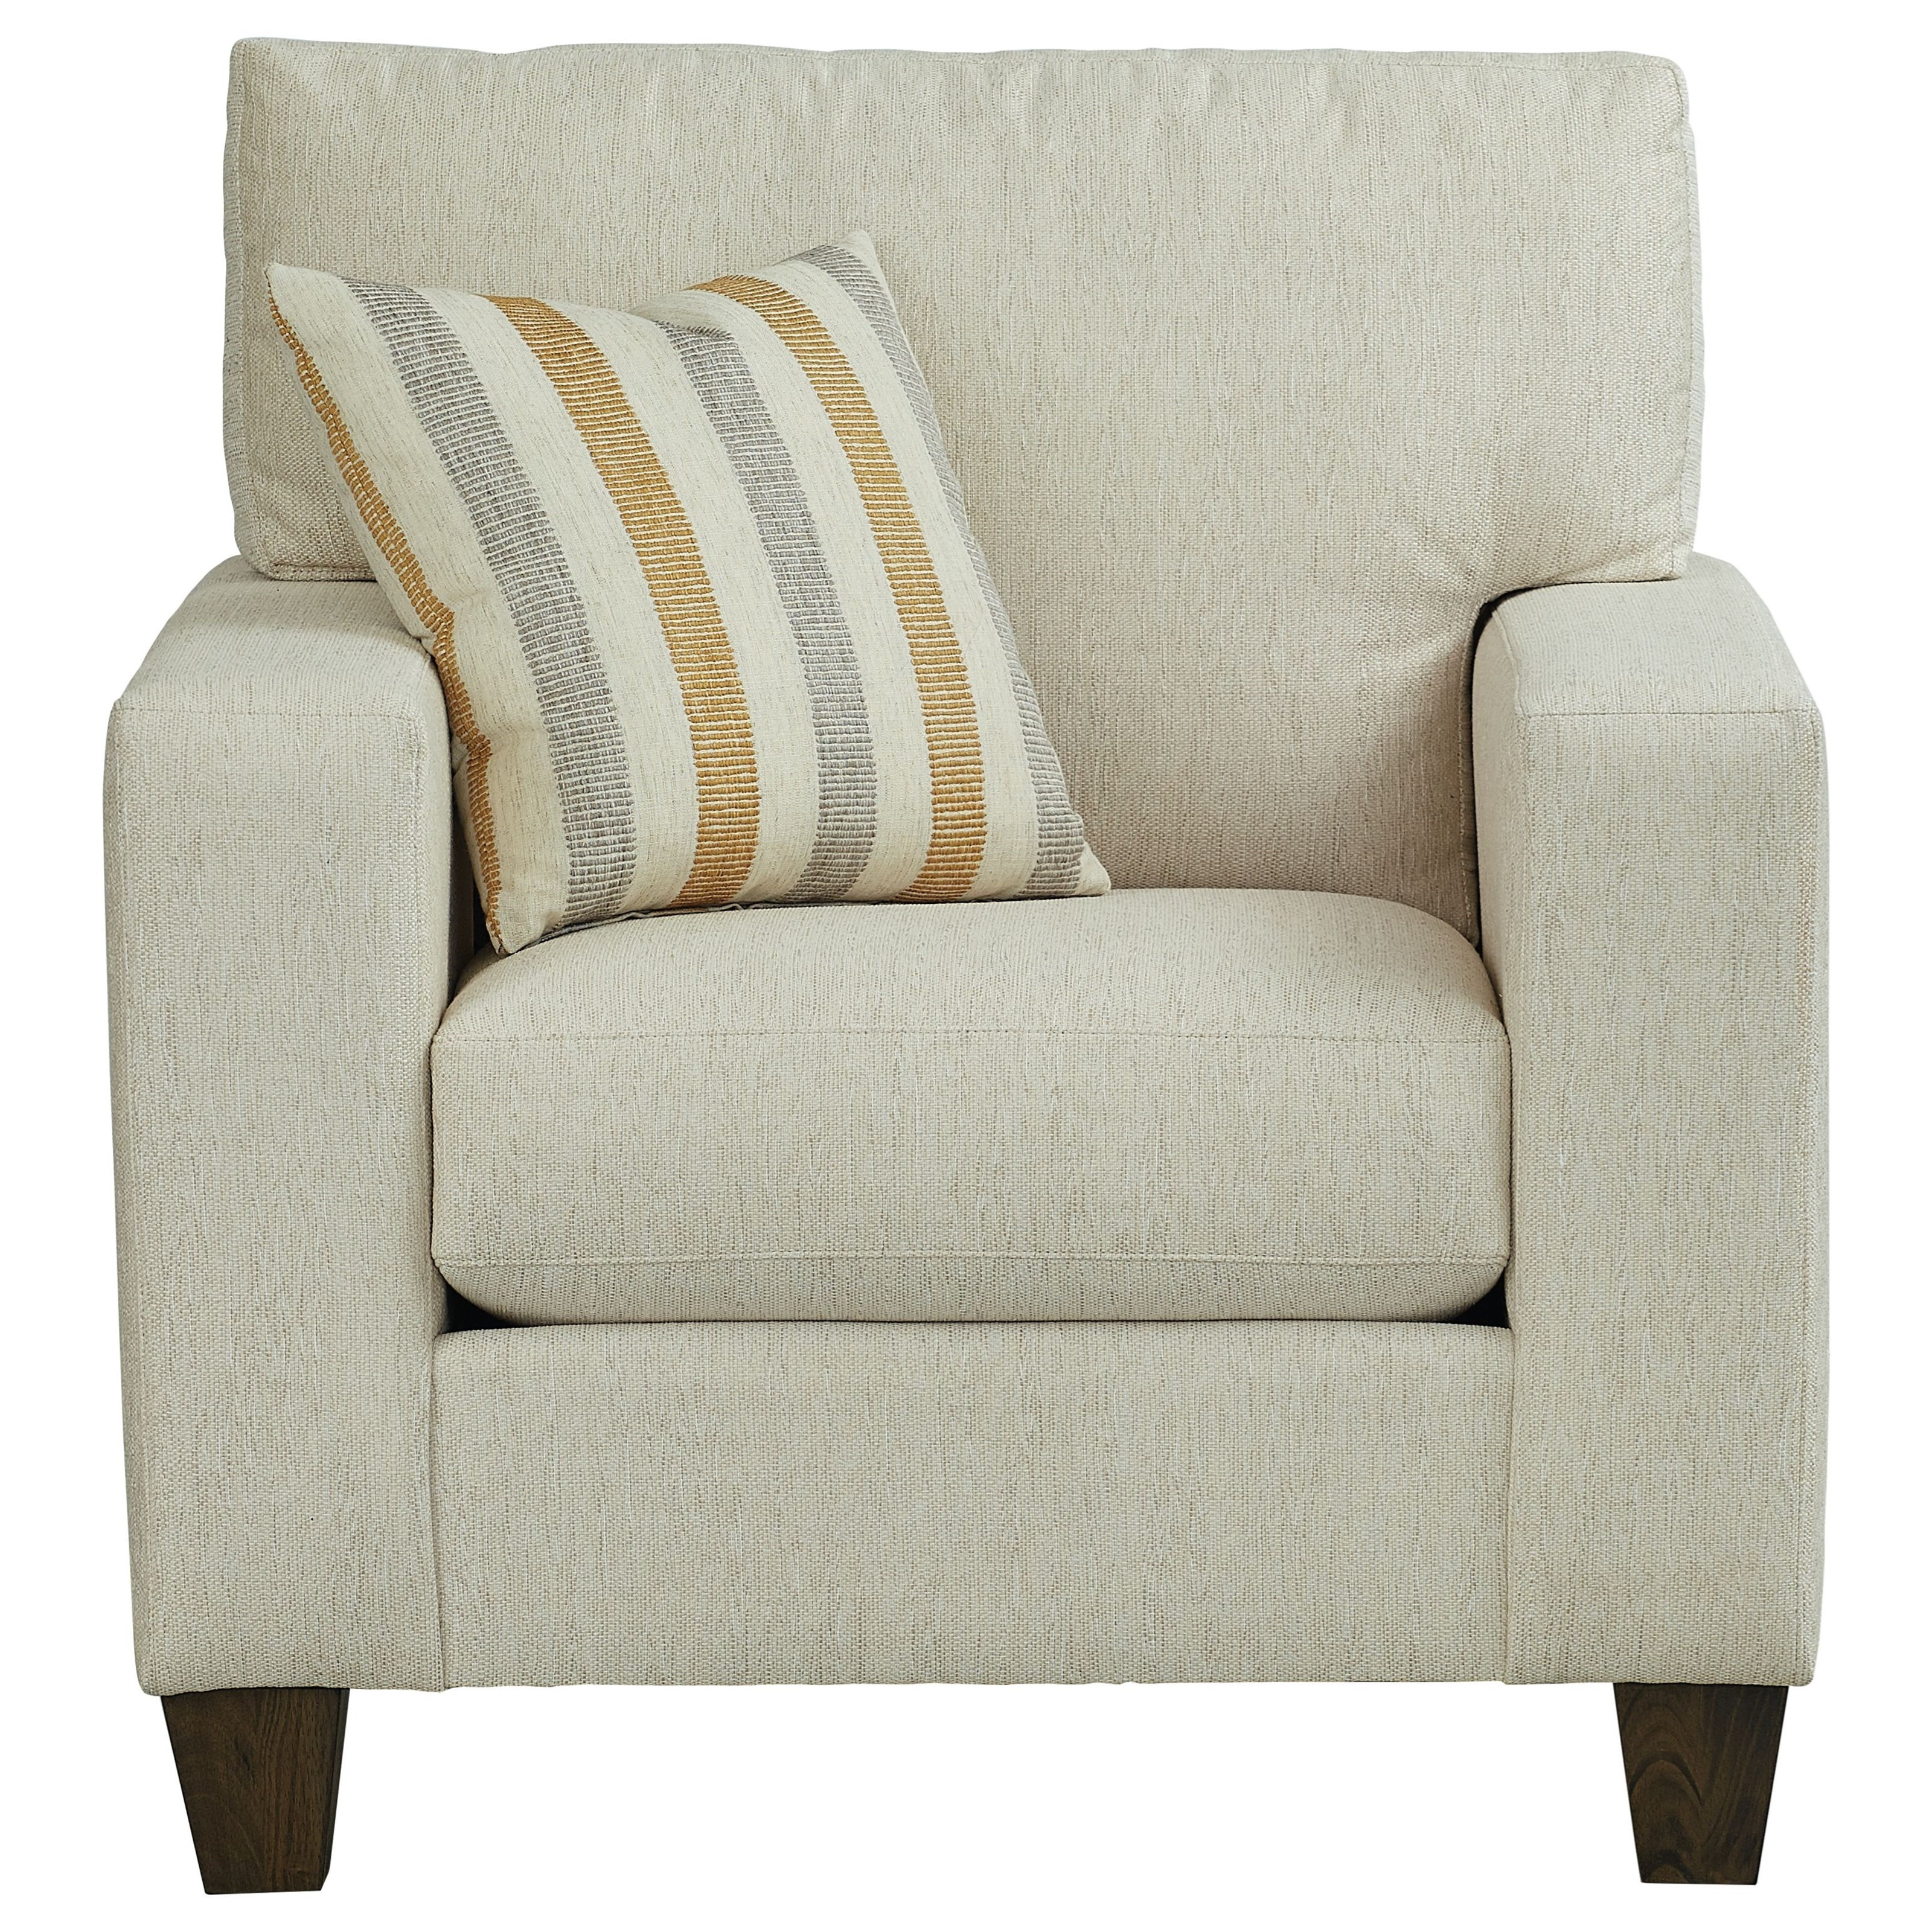 Tate Chair by Bassett at Bassett of Cool Springs